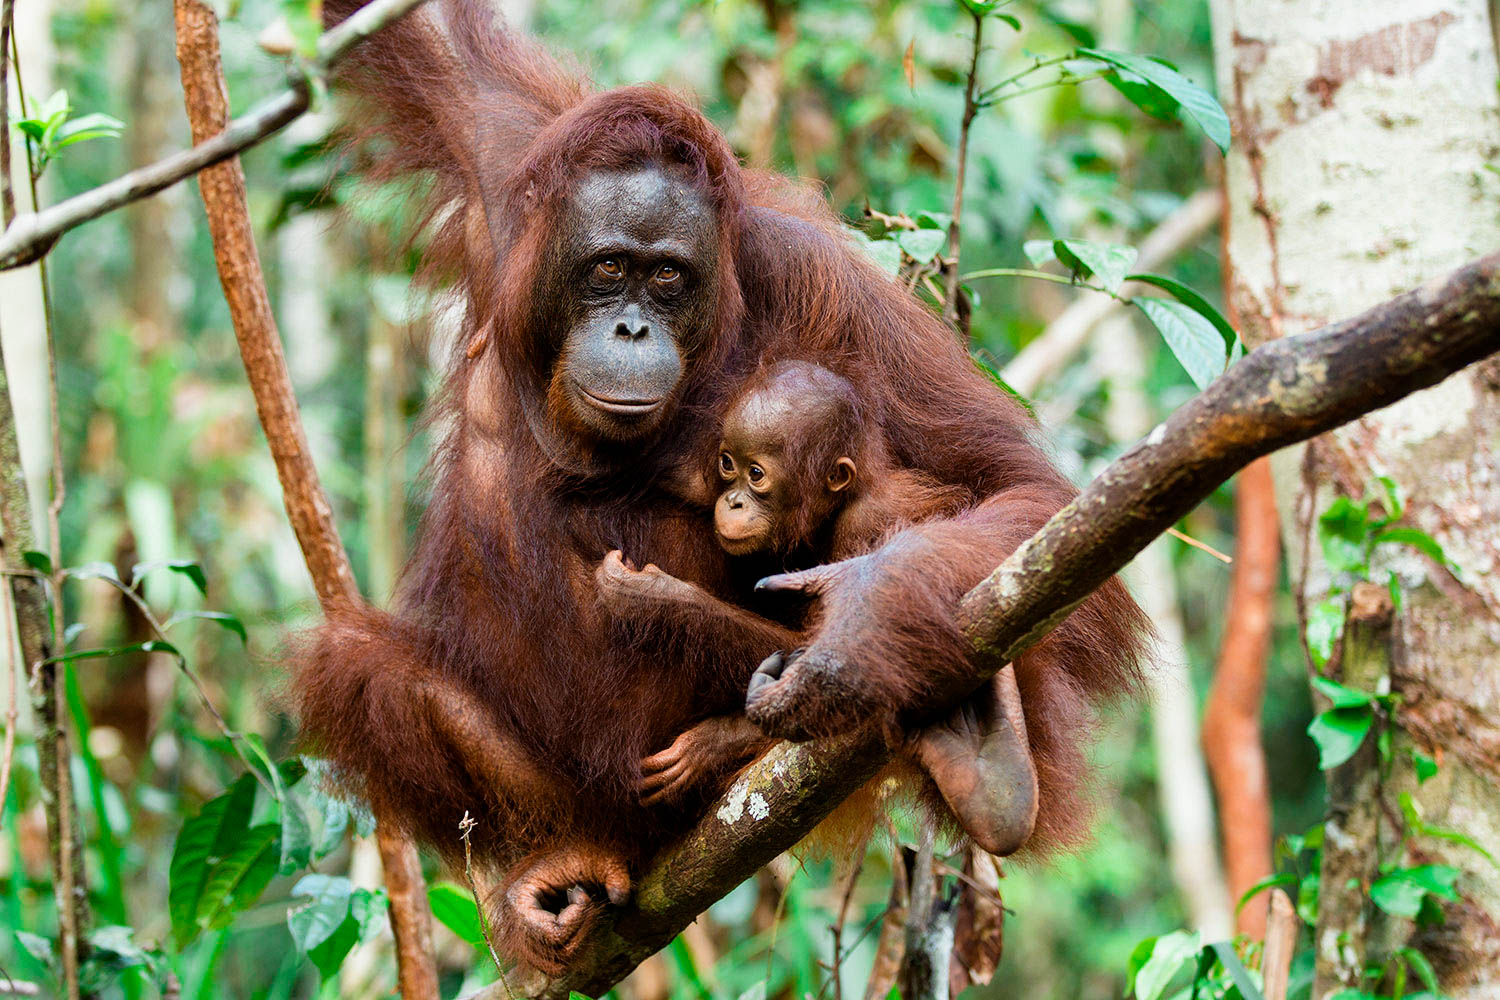 Orangutan Baby and Mum